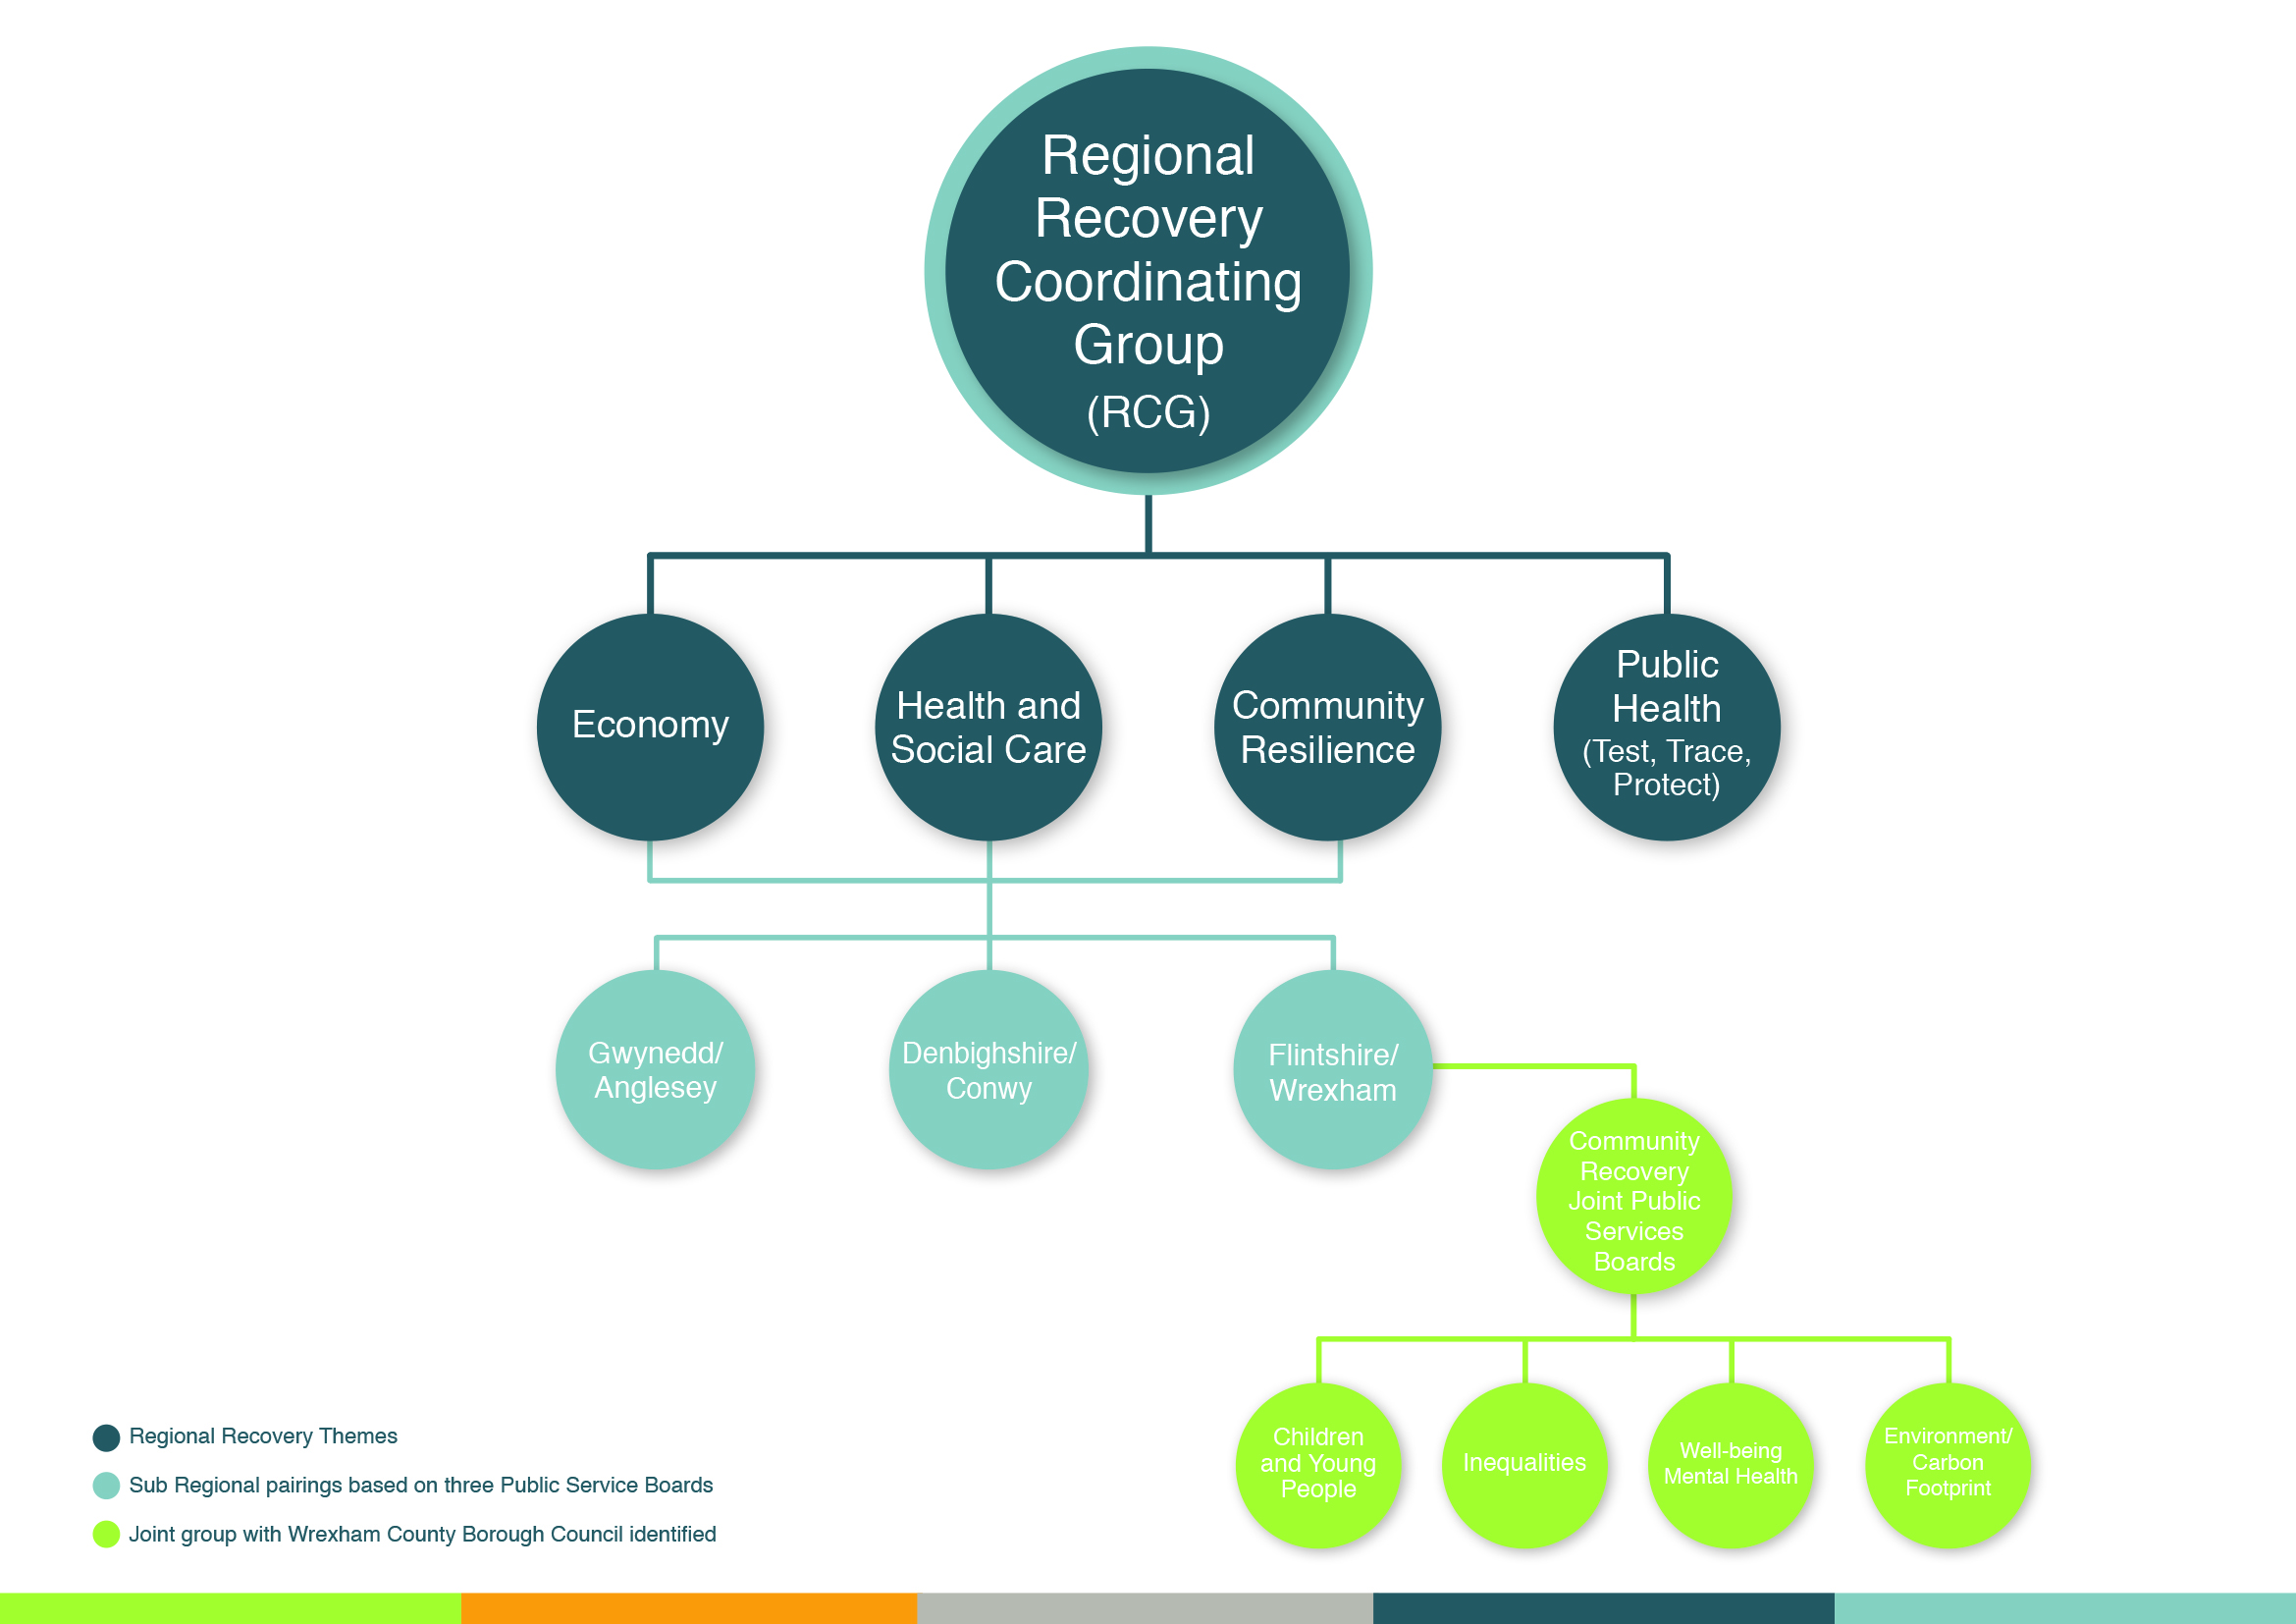 Regional Recovery Coordinating Group (RCG) Structure